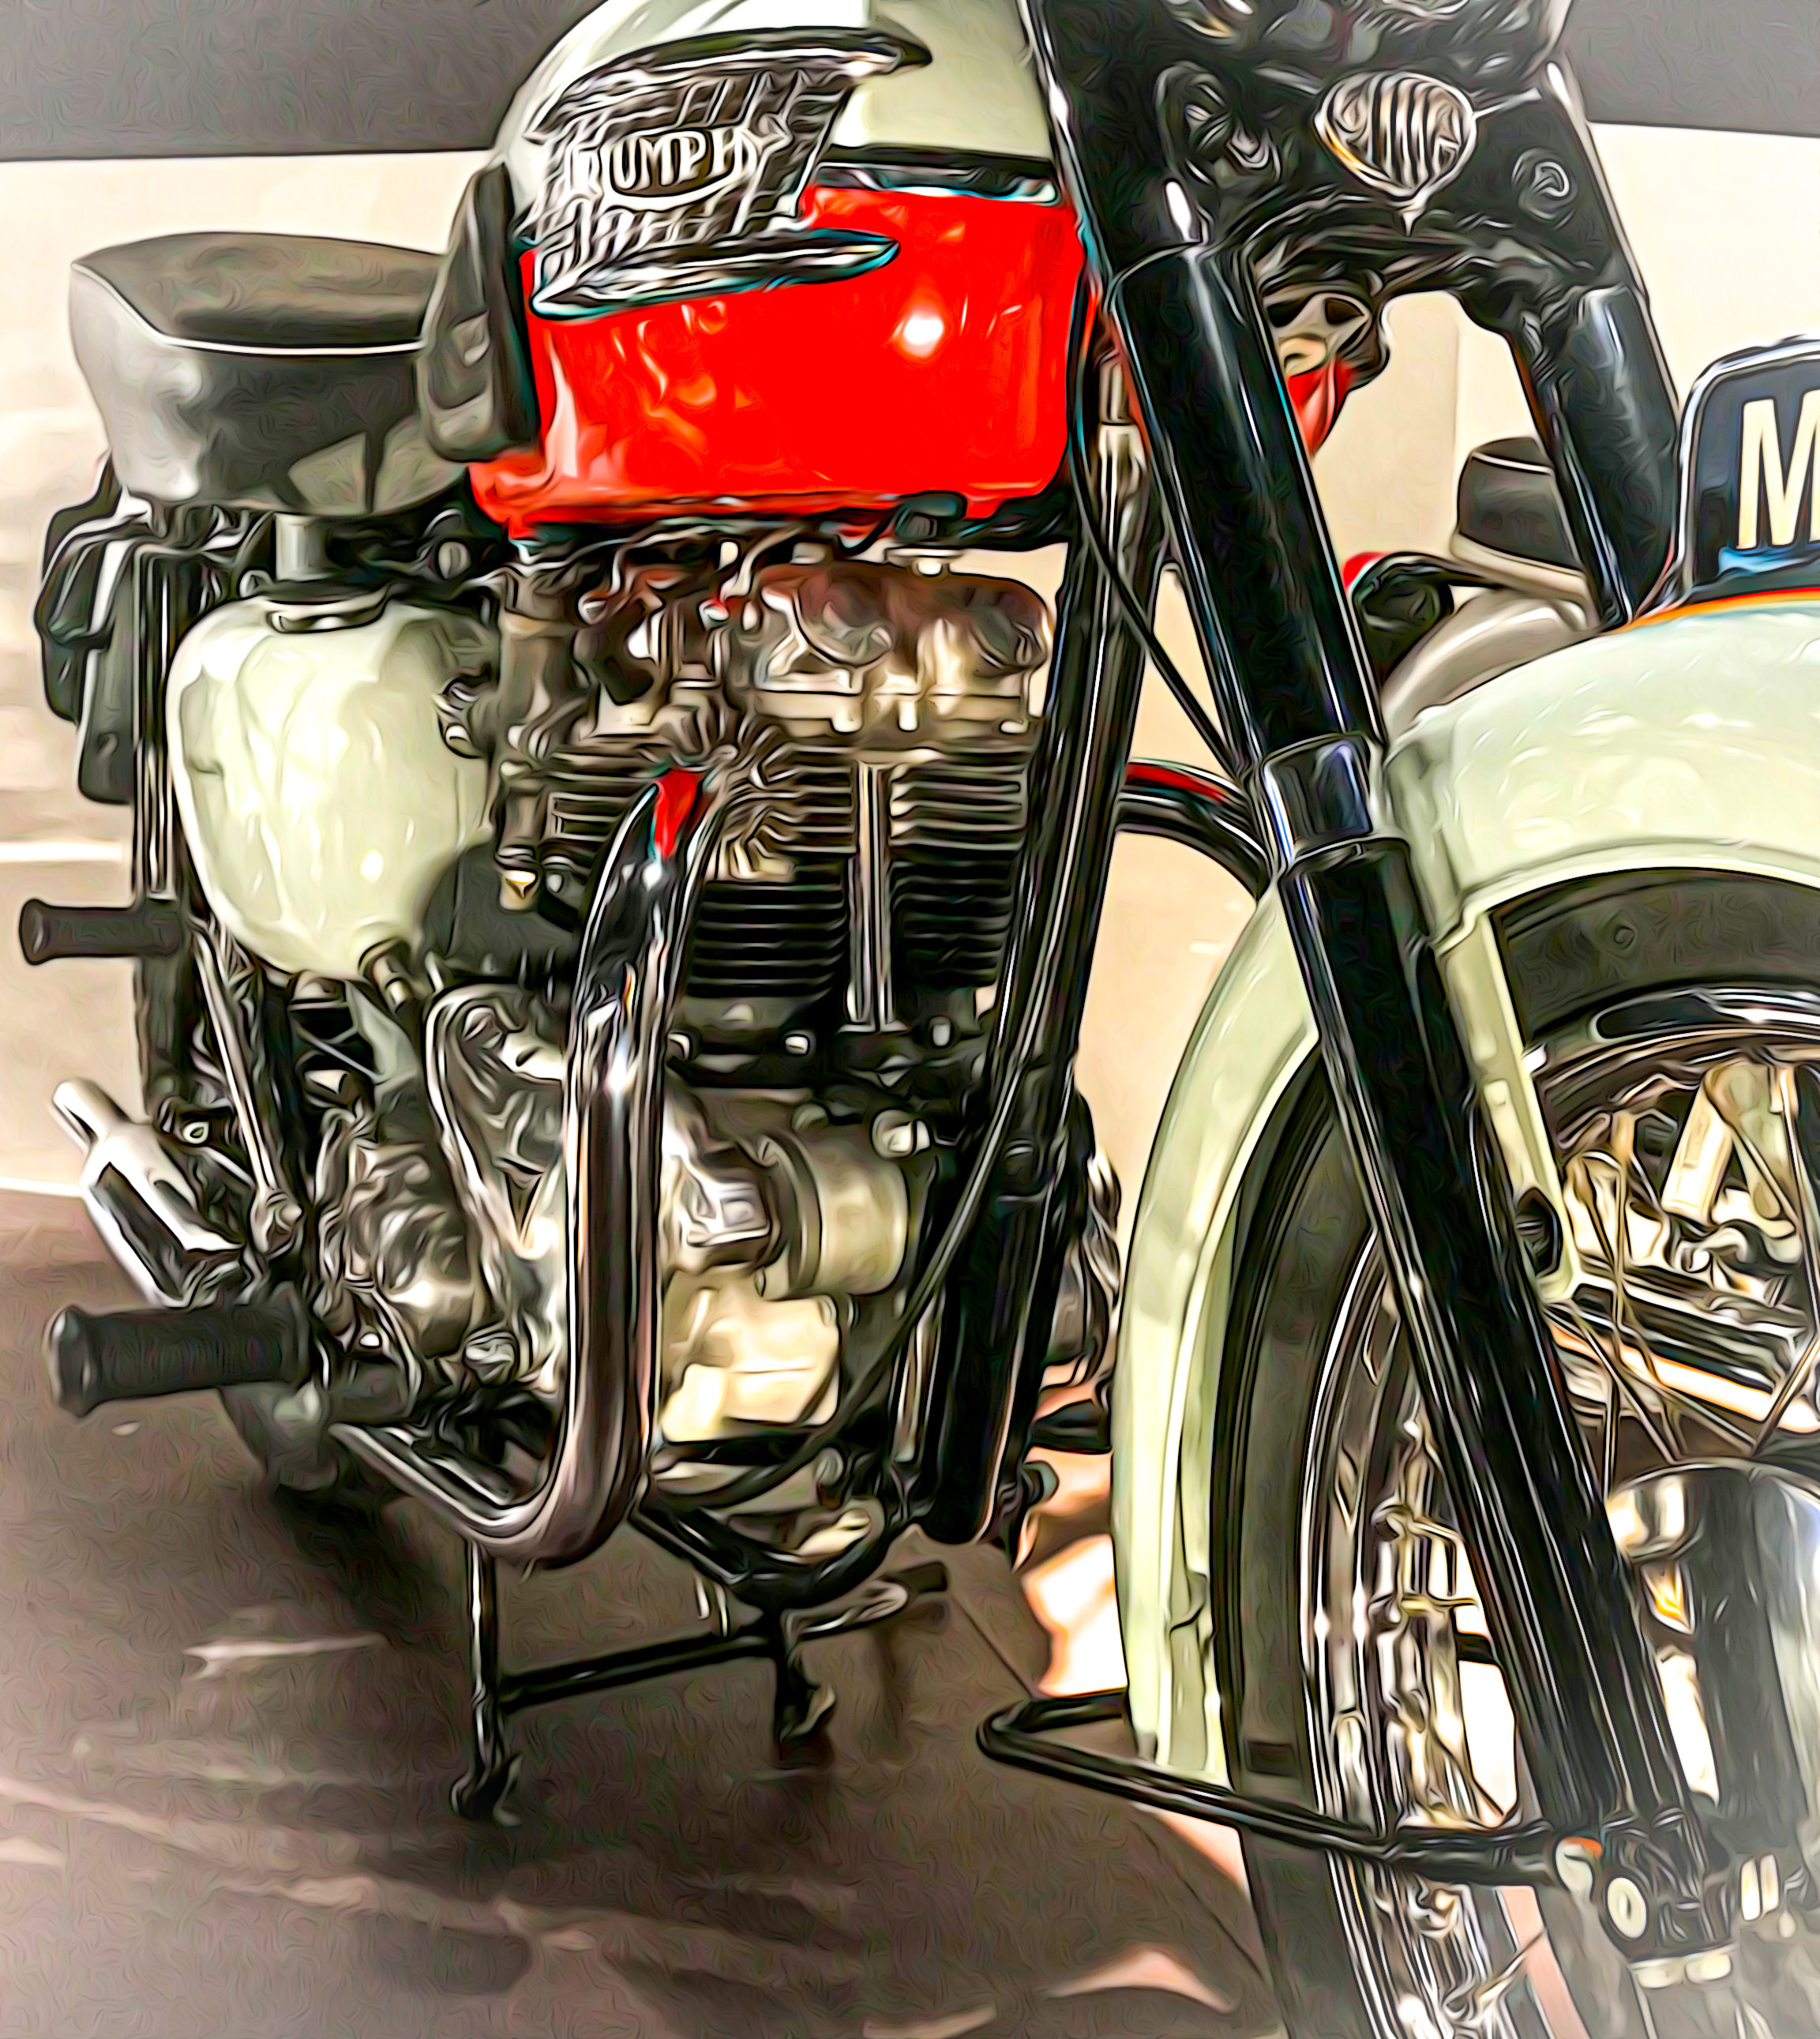 "This is the original 1959 Triumph Bonneville displayed in the factory's museum (yes, I applied a little artistry to this photo). Read my Blog article titled ""Motorcycle Musings"" to see how inspirational this bike has been to me."